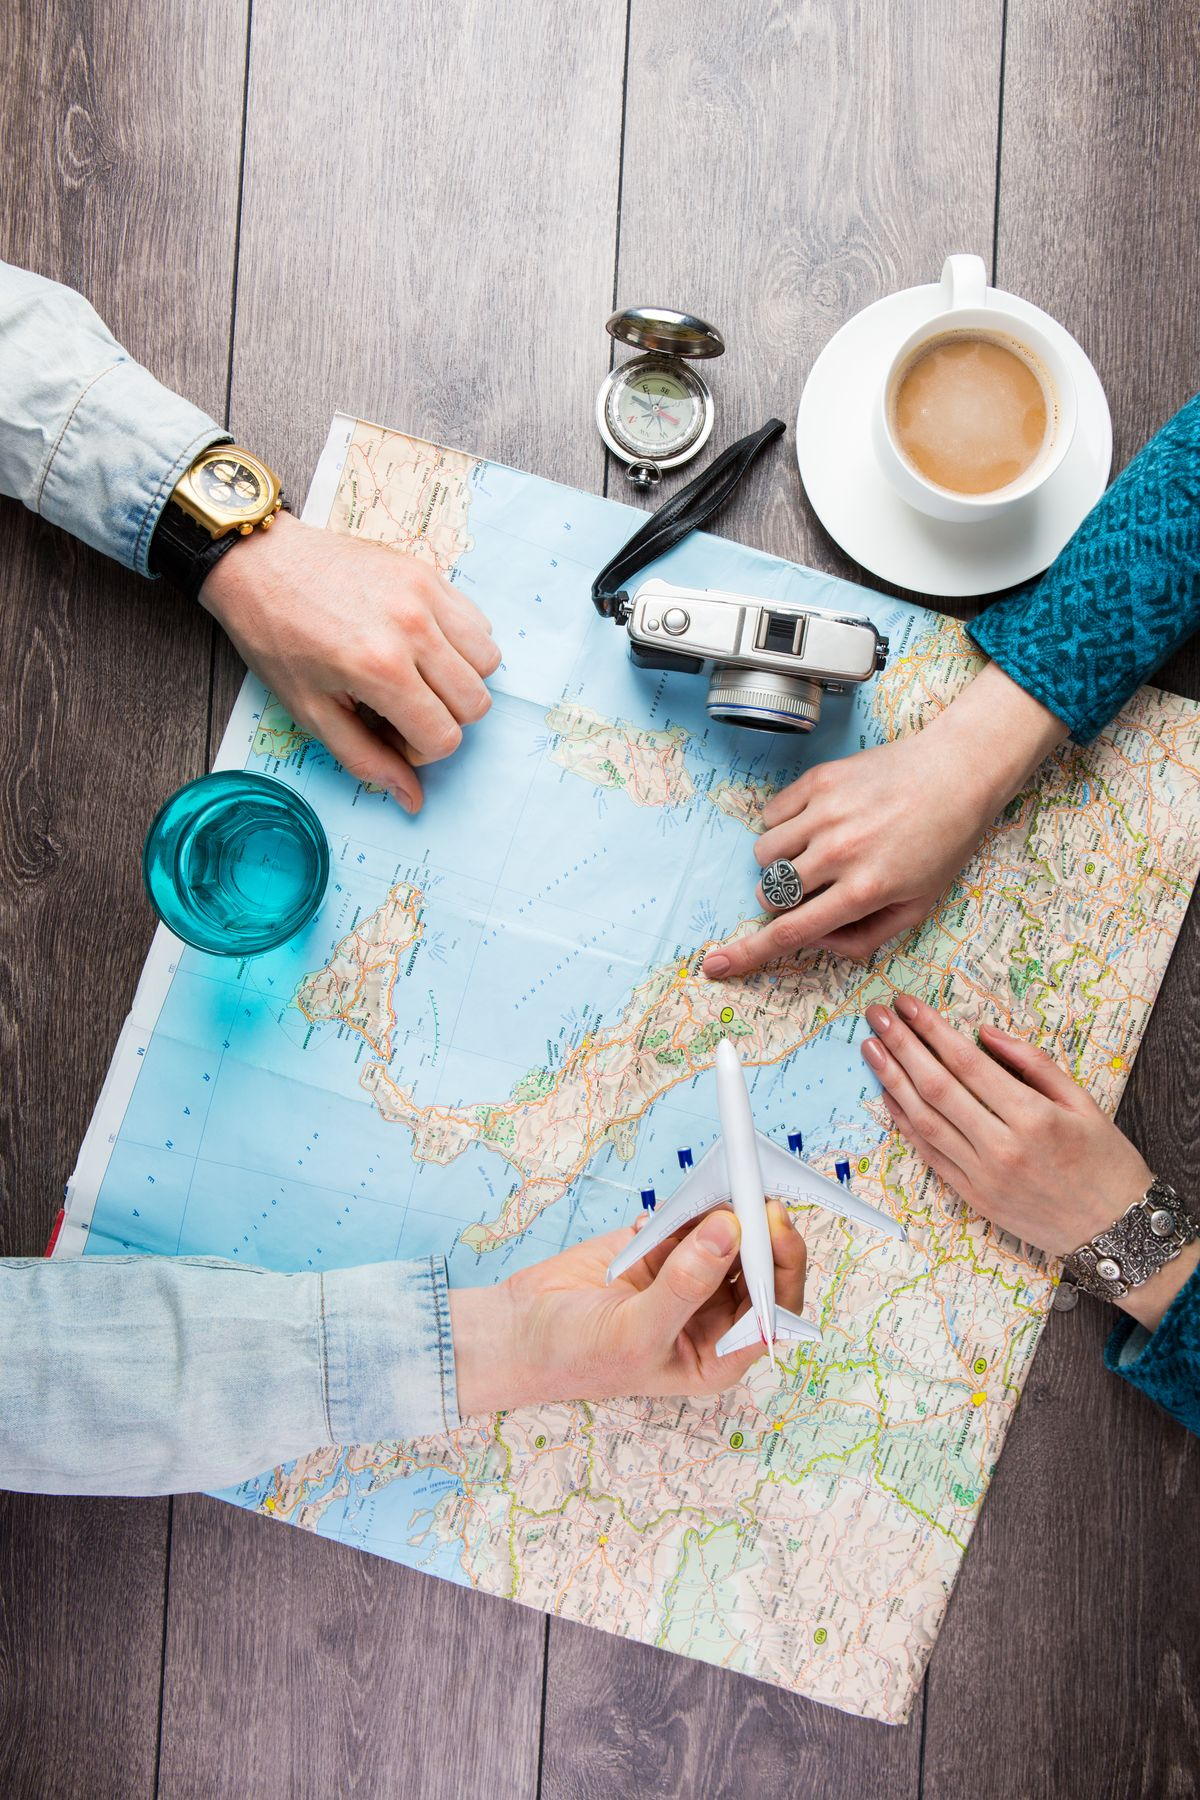 Planning a trip with a map and accessories